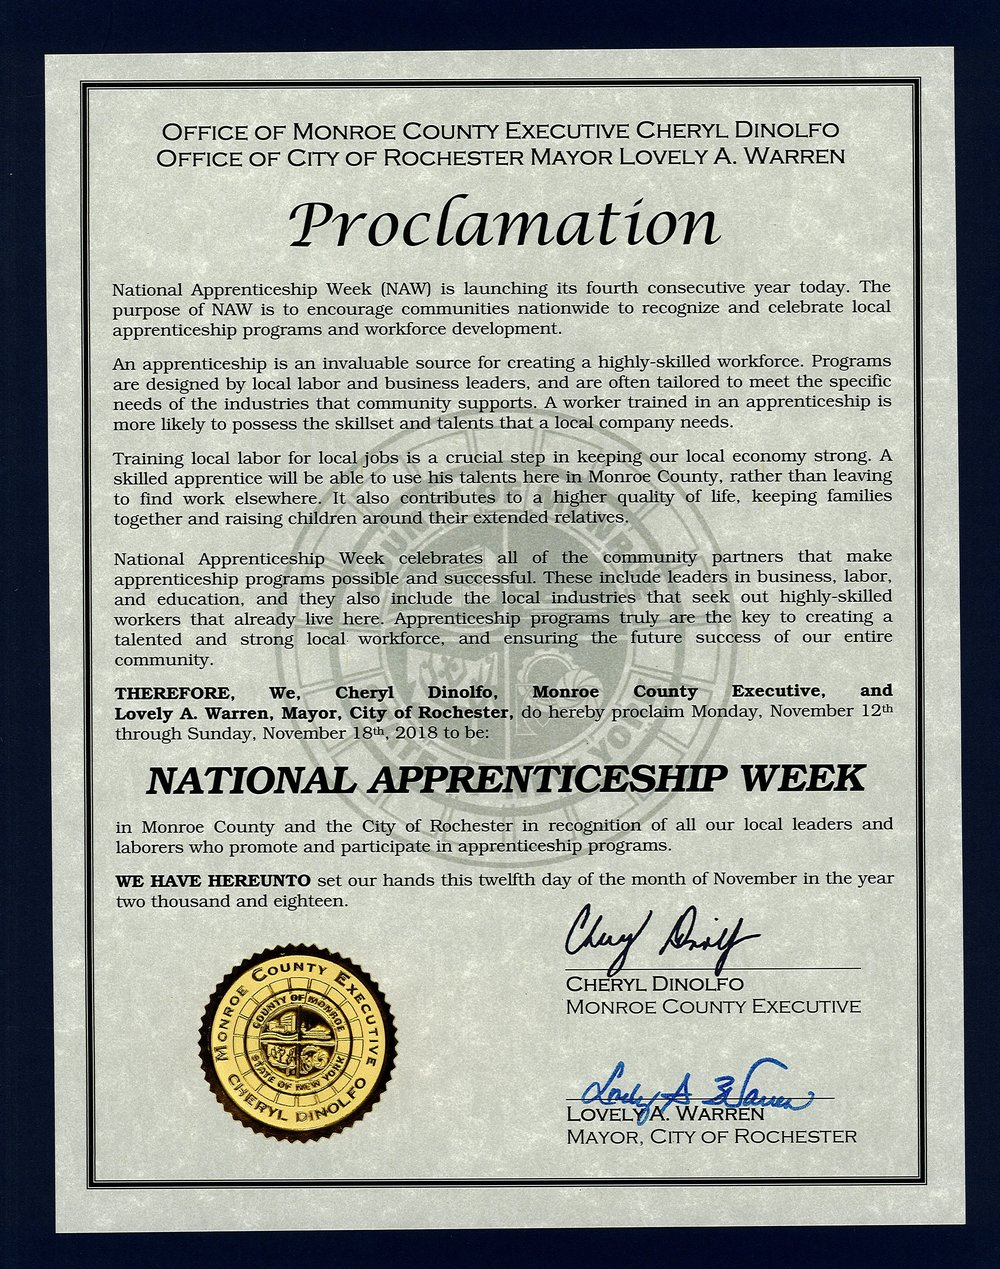 Monroe County & City of Rochester - Proclaim National Apprenticeship Week in Rochester!